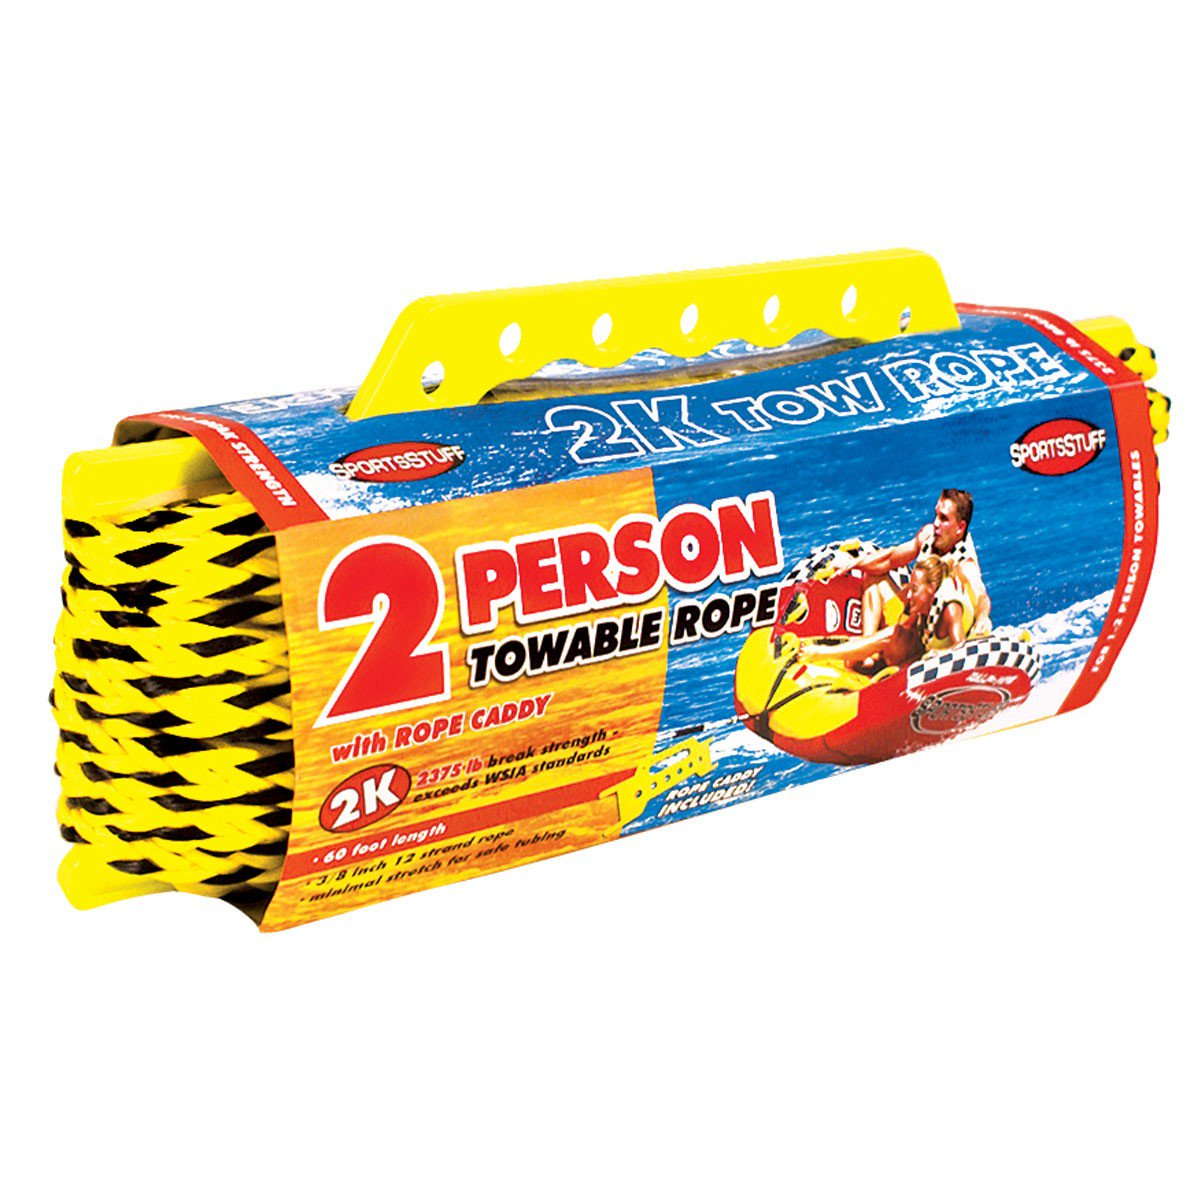 Airhead SPORTSSTUFF Towable Tube 2-Person 60-foot Tow Rope, 2375lbs | 57-1522